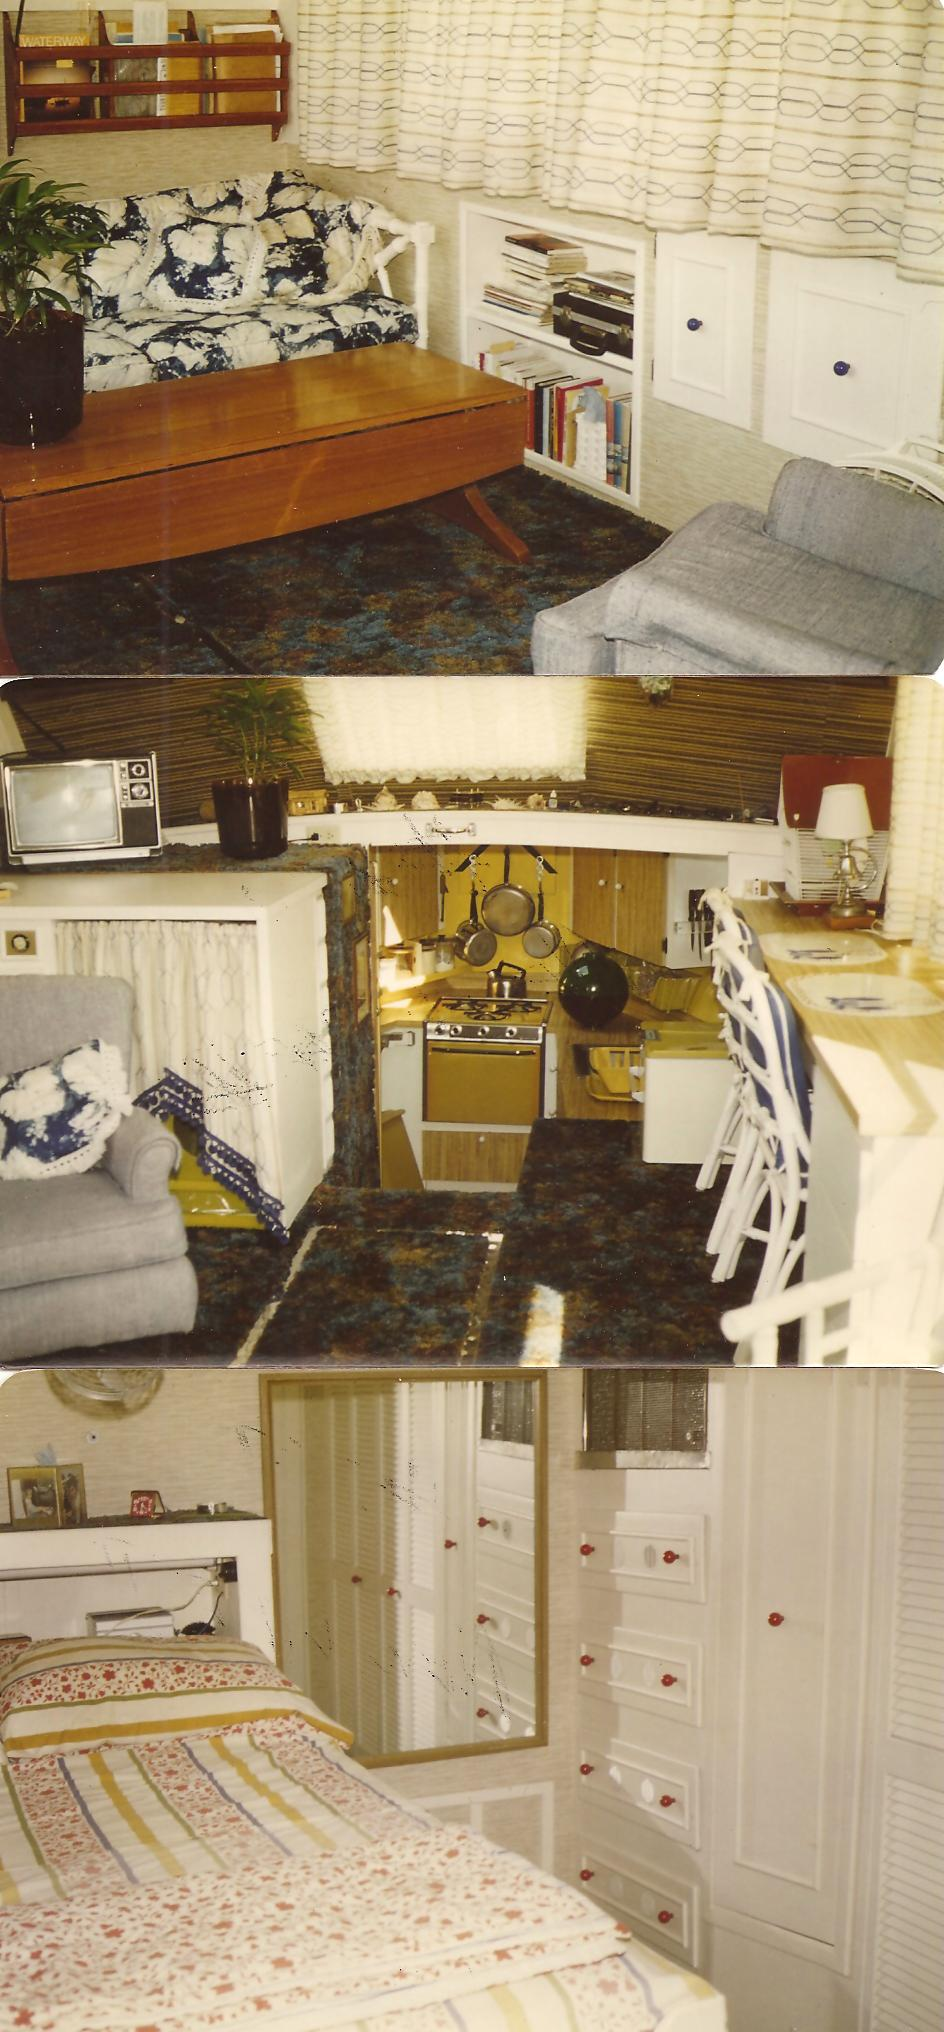 1962 Silver Star 43' Interior Shots.jpg